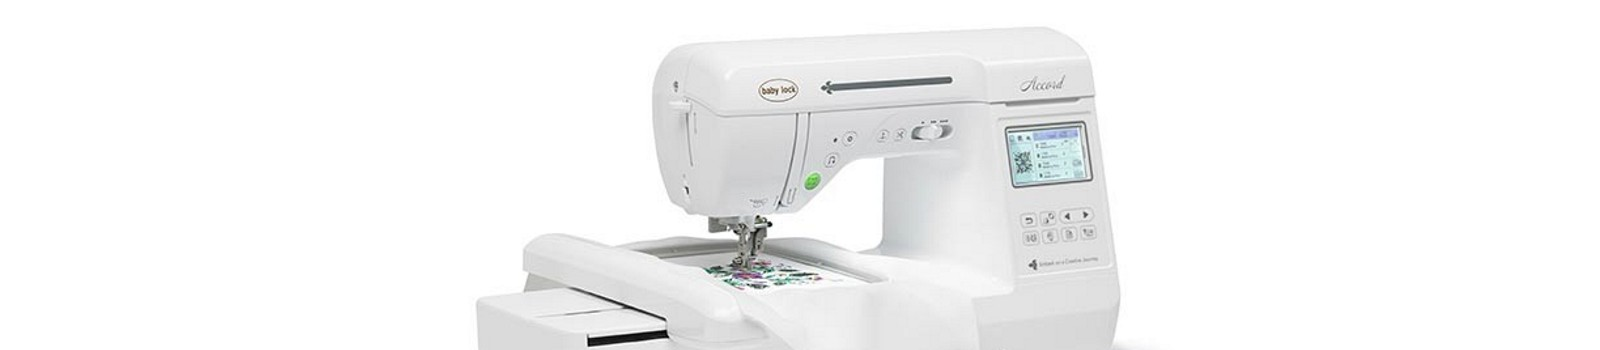 Baby Lock Accord Sewing and Embroidery Machine